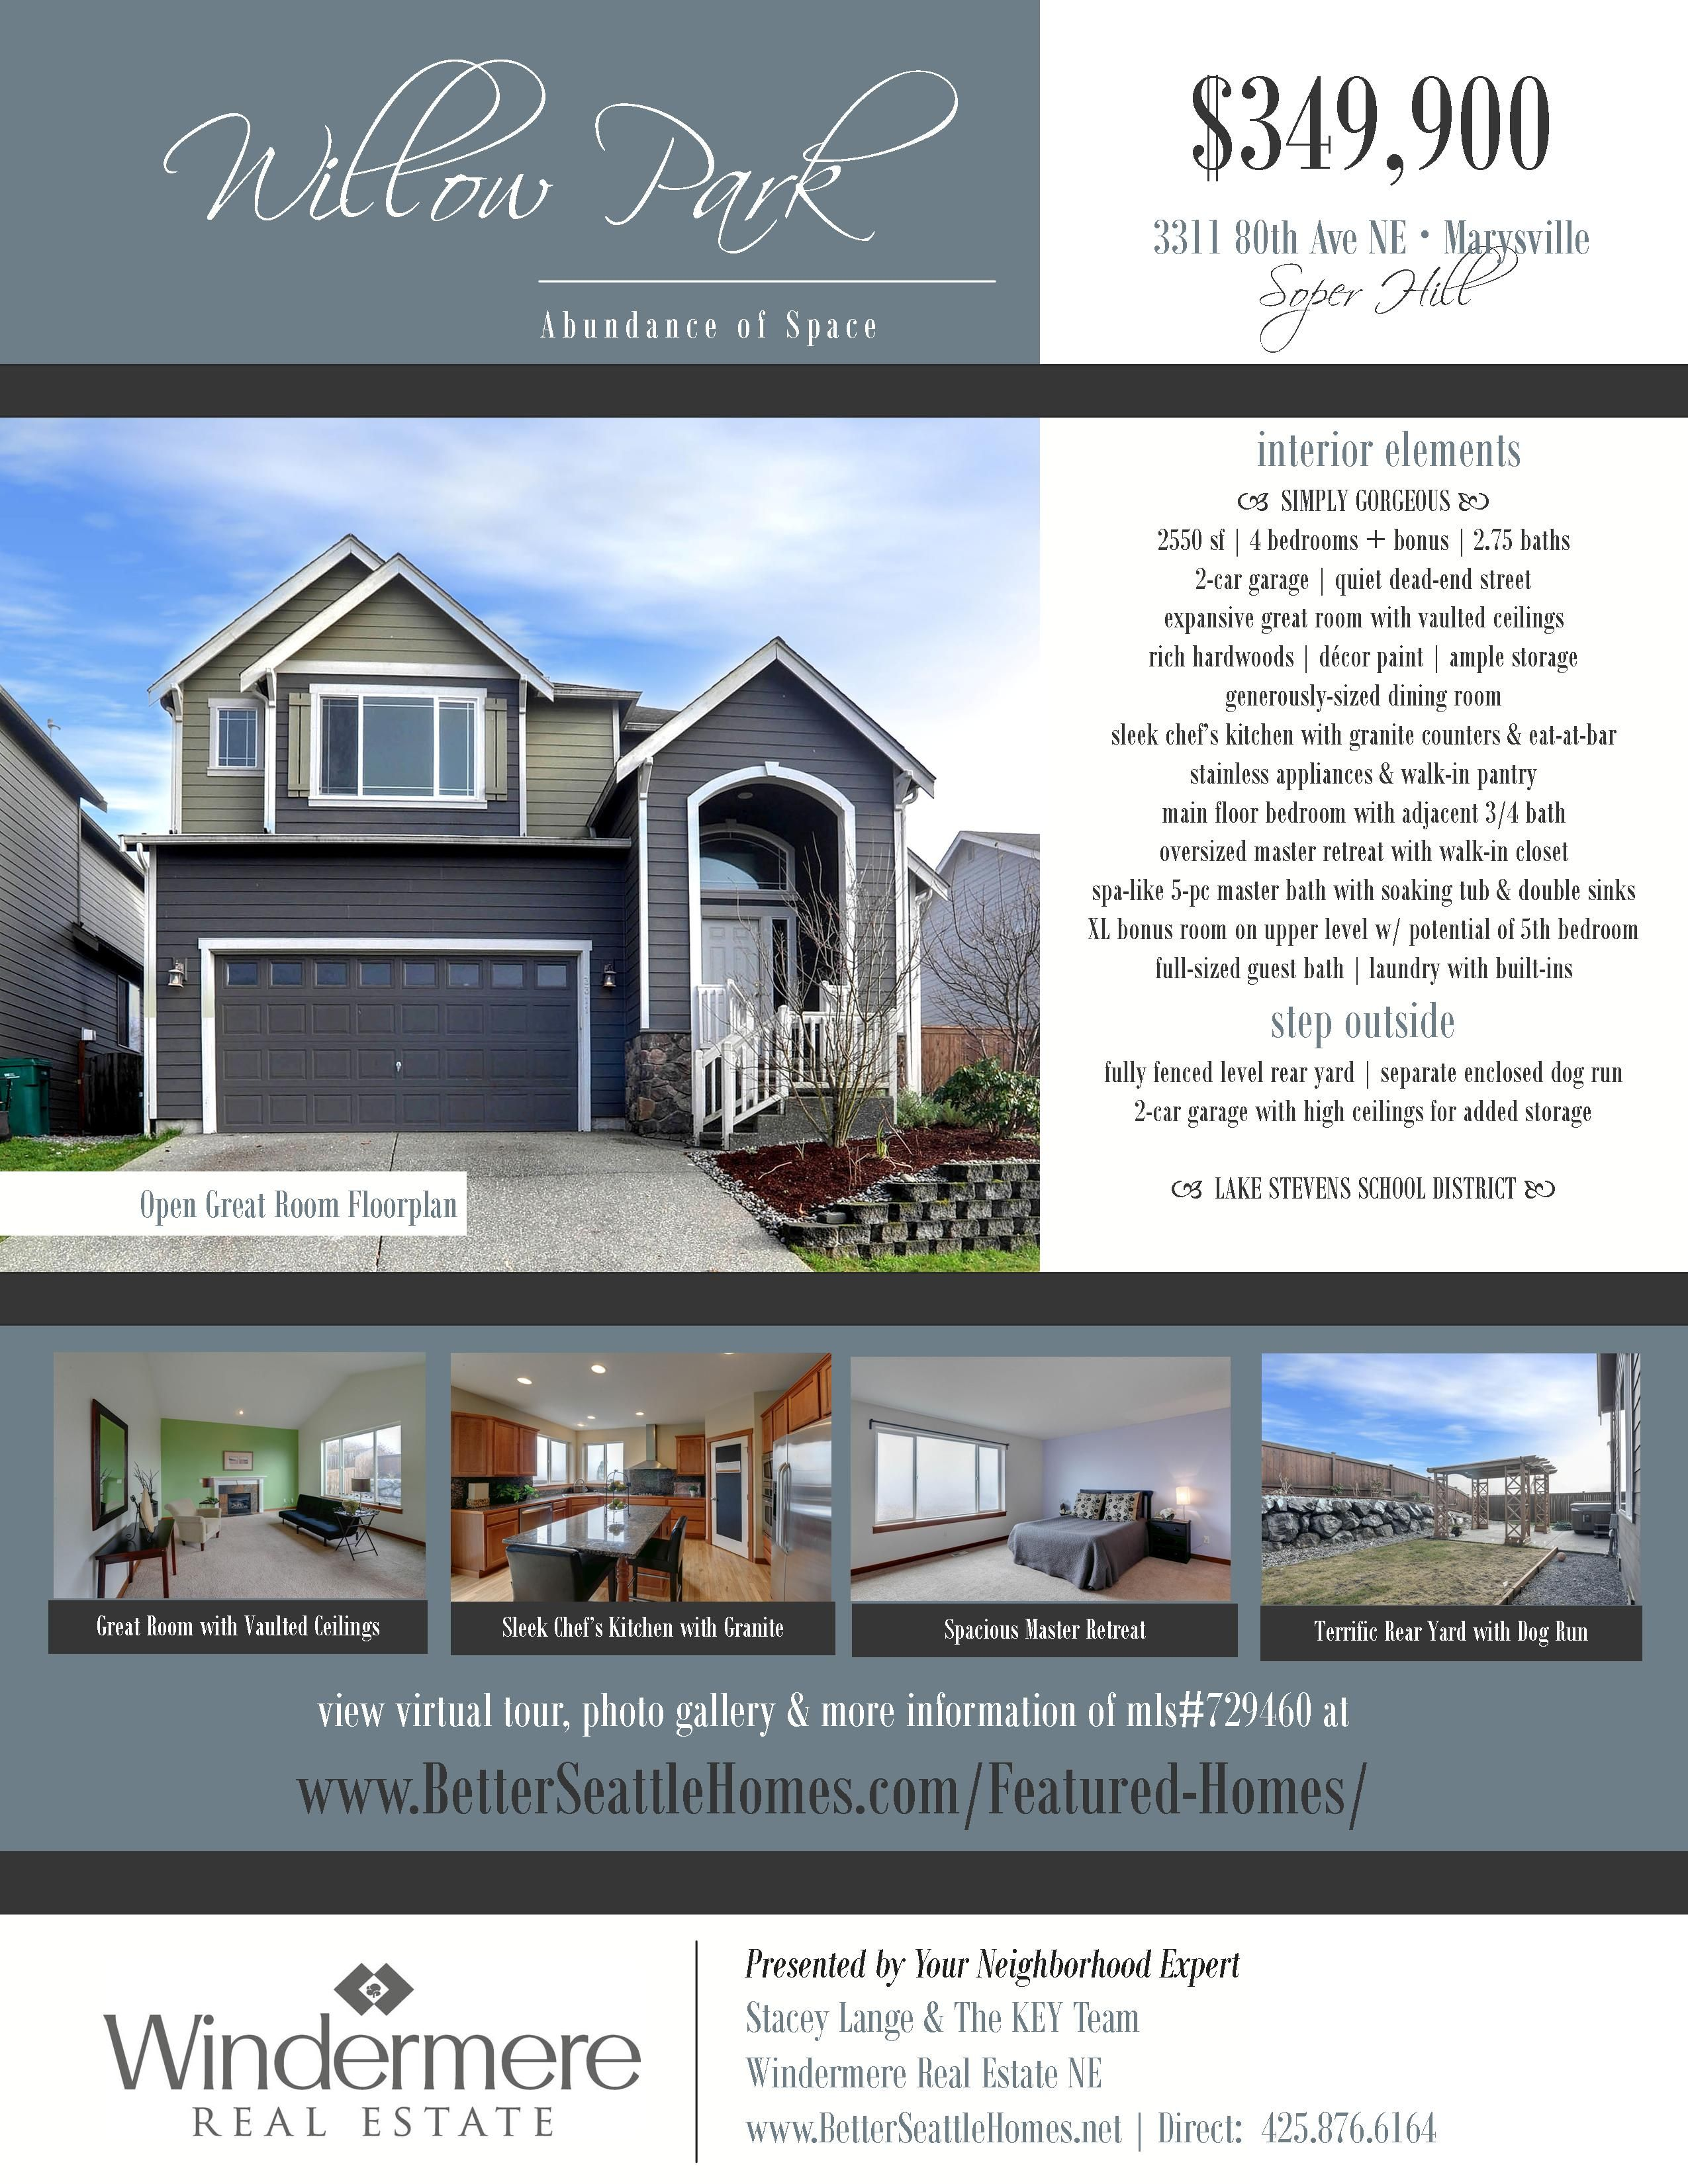 Learn More About This Willow Park Home For Sale And Search ALL Marysville Real